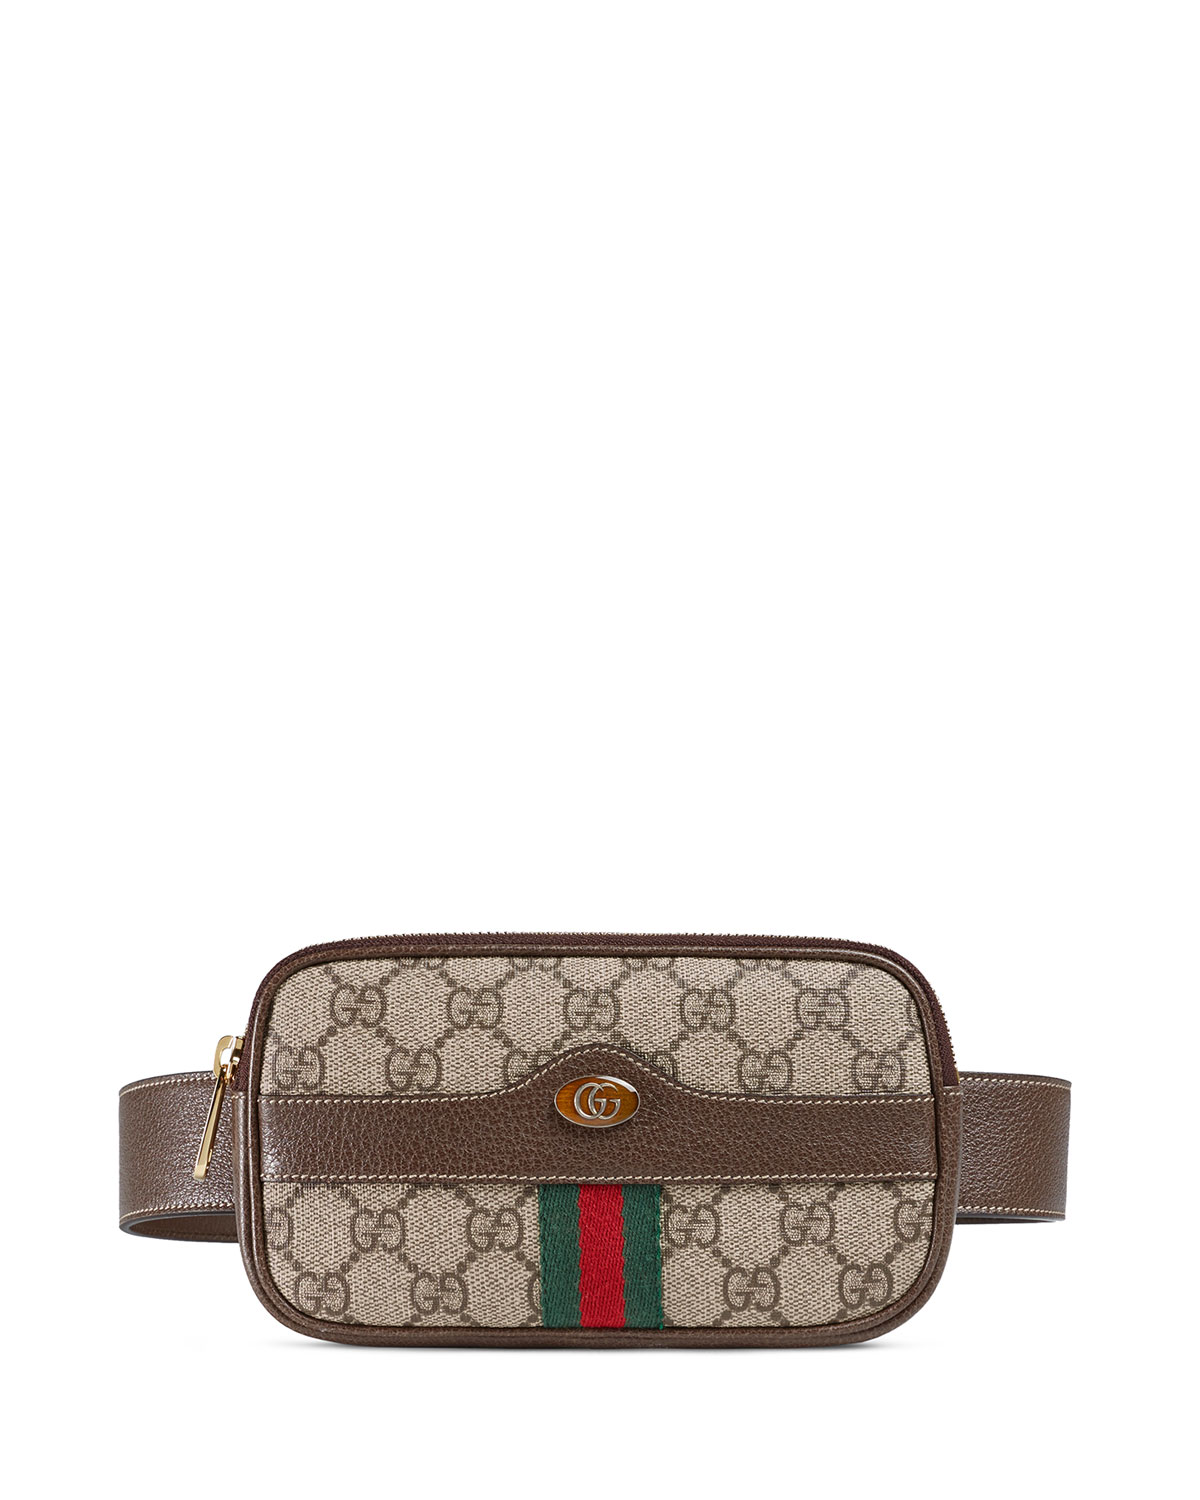 ac0752aa9 Gucci Ophidia GG Supreme Canvas Belt Bag | Neiman Marcus